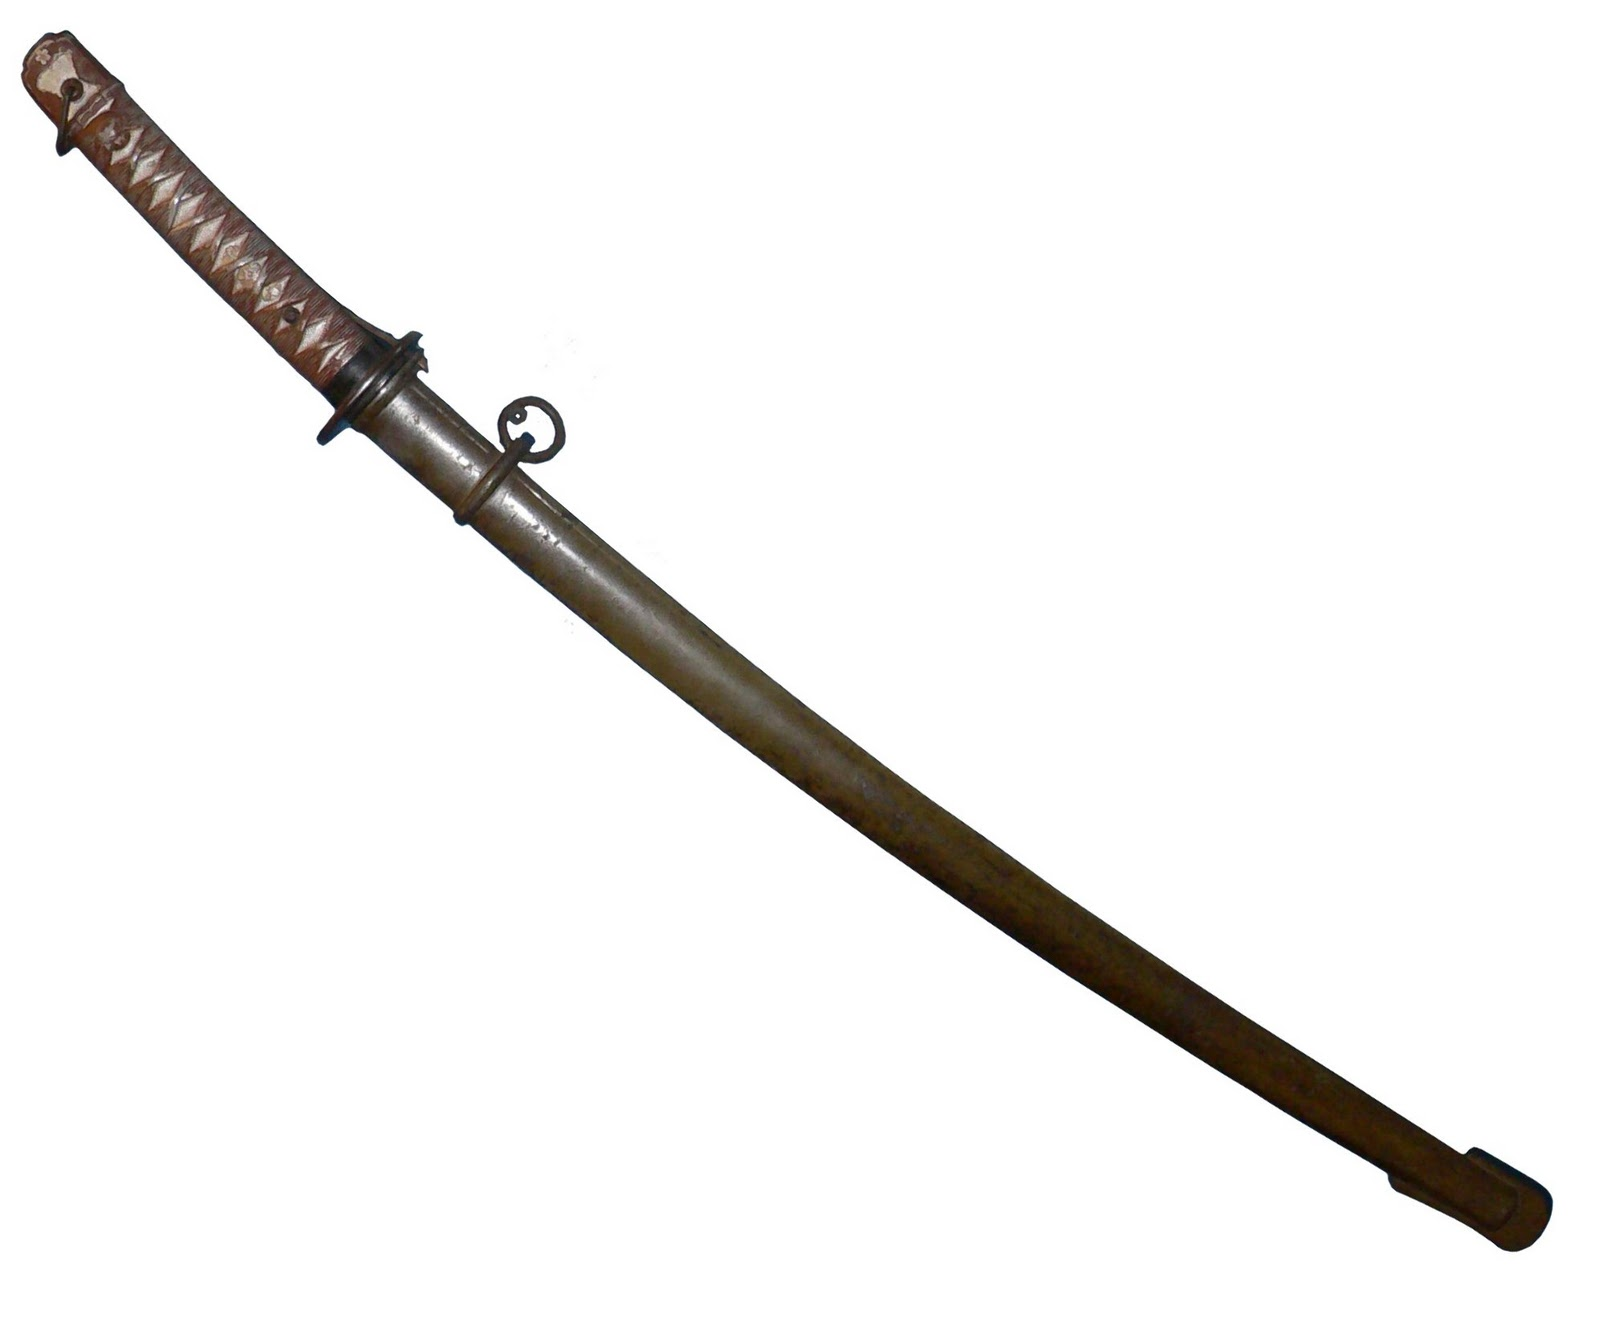 Neko Random: A Look Into History: The Katana